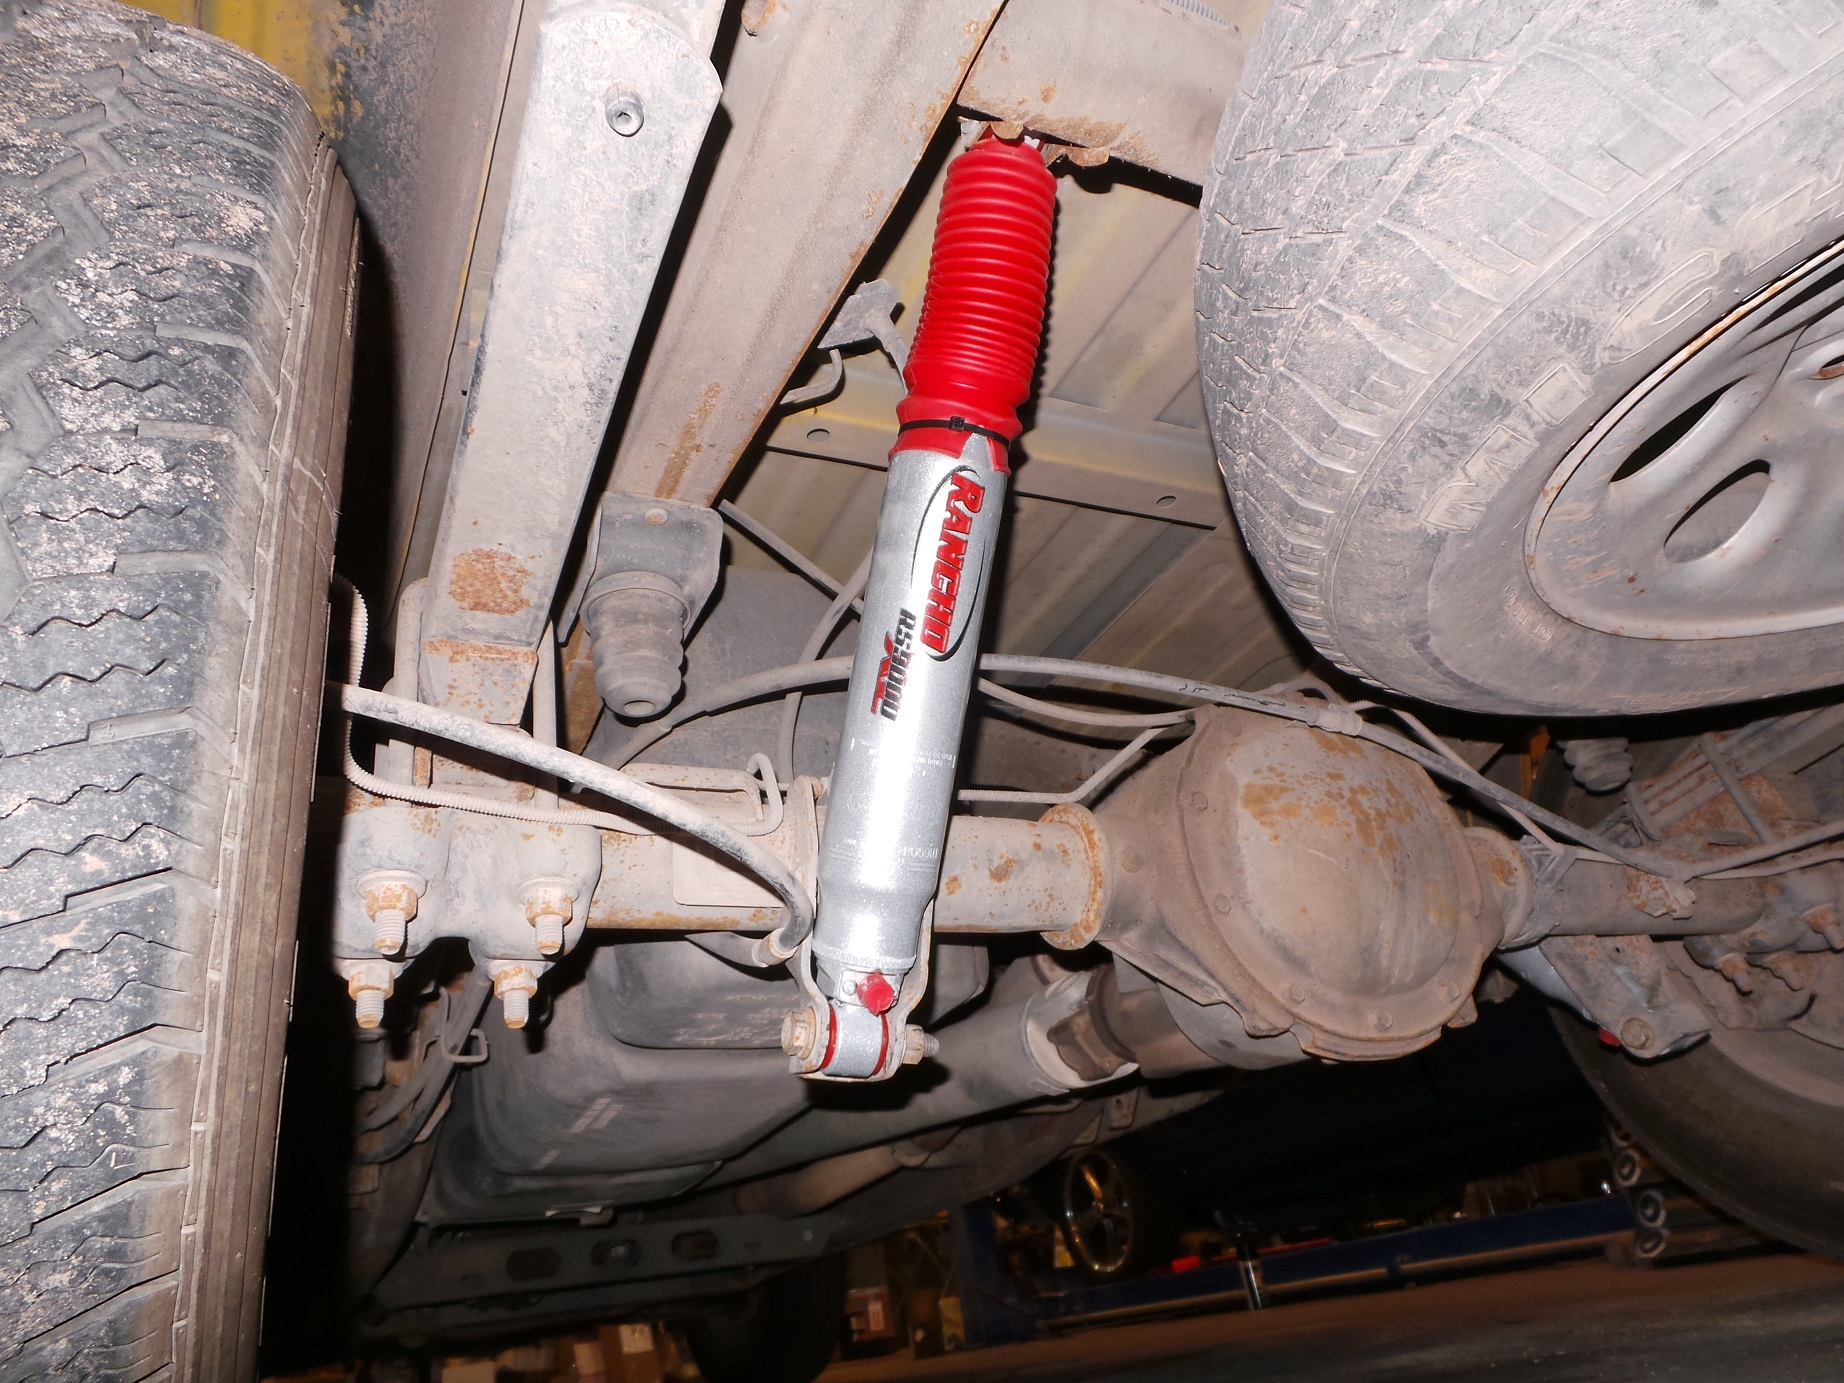 The new shocks look good under the truck, but will they perform?